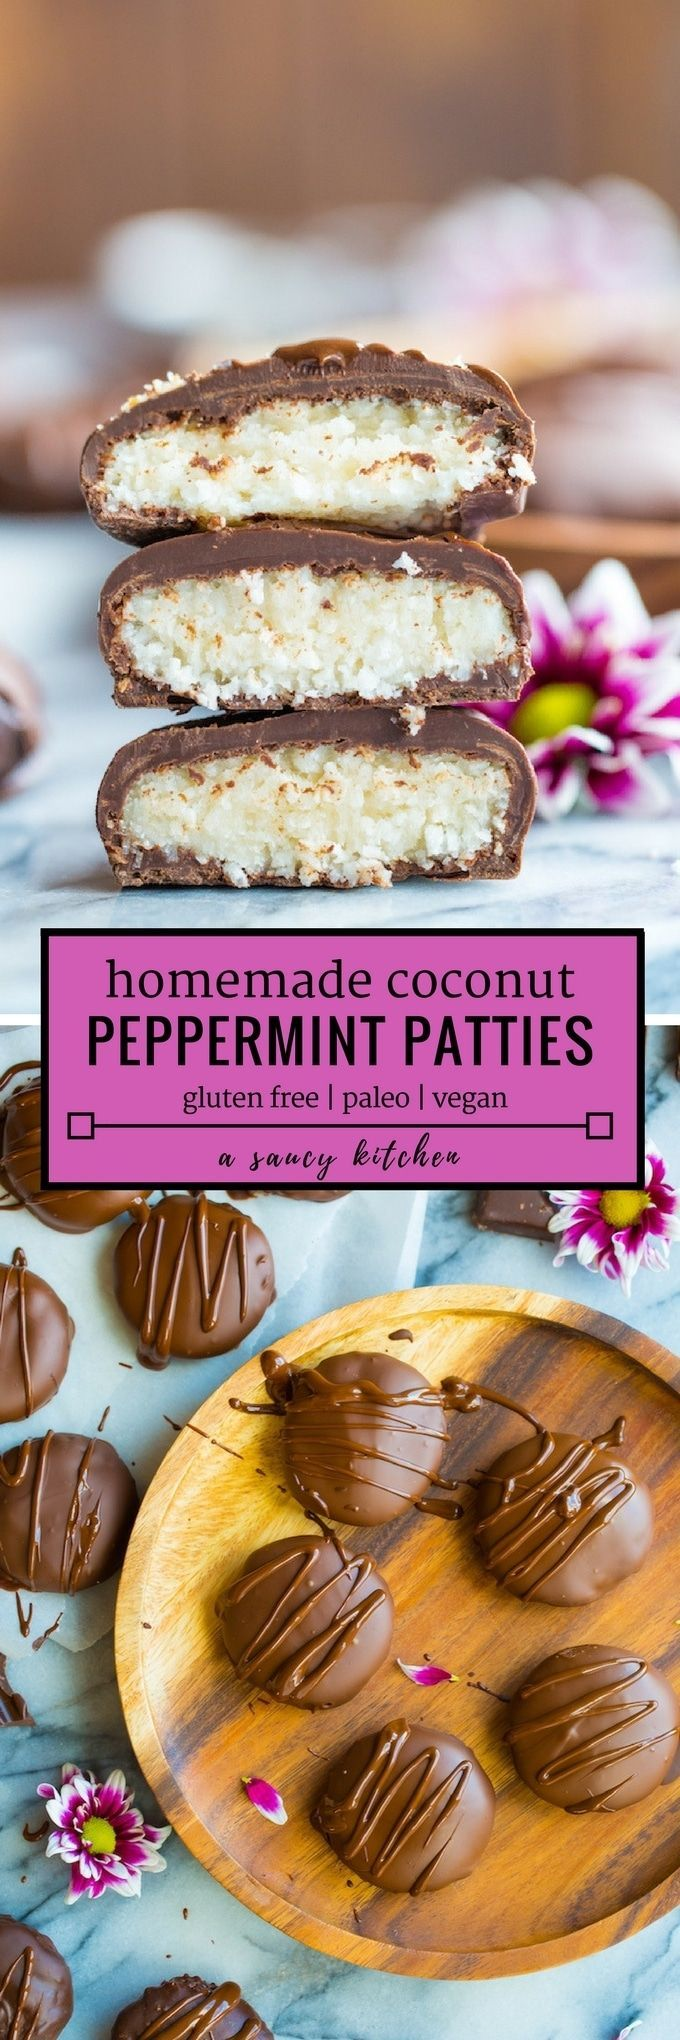 Only five ingredients needed to make these Homemade Coconut Peppermint Patties | #GlutenFree + #Paleo + #Vegan